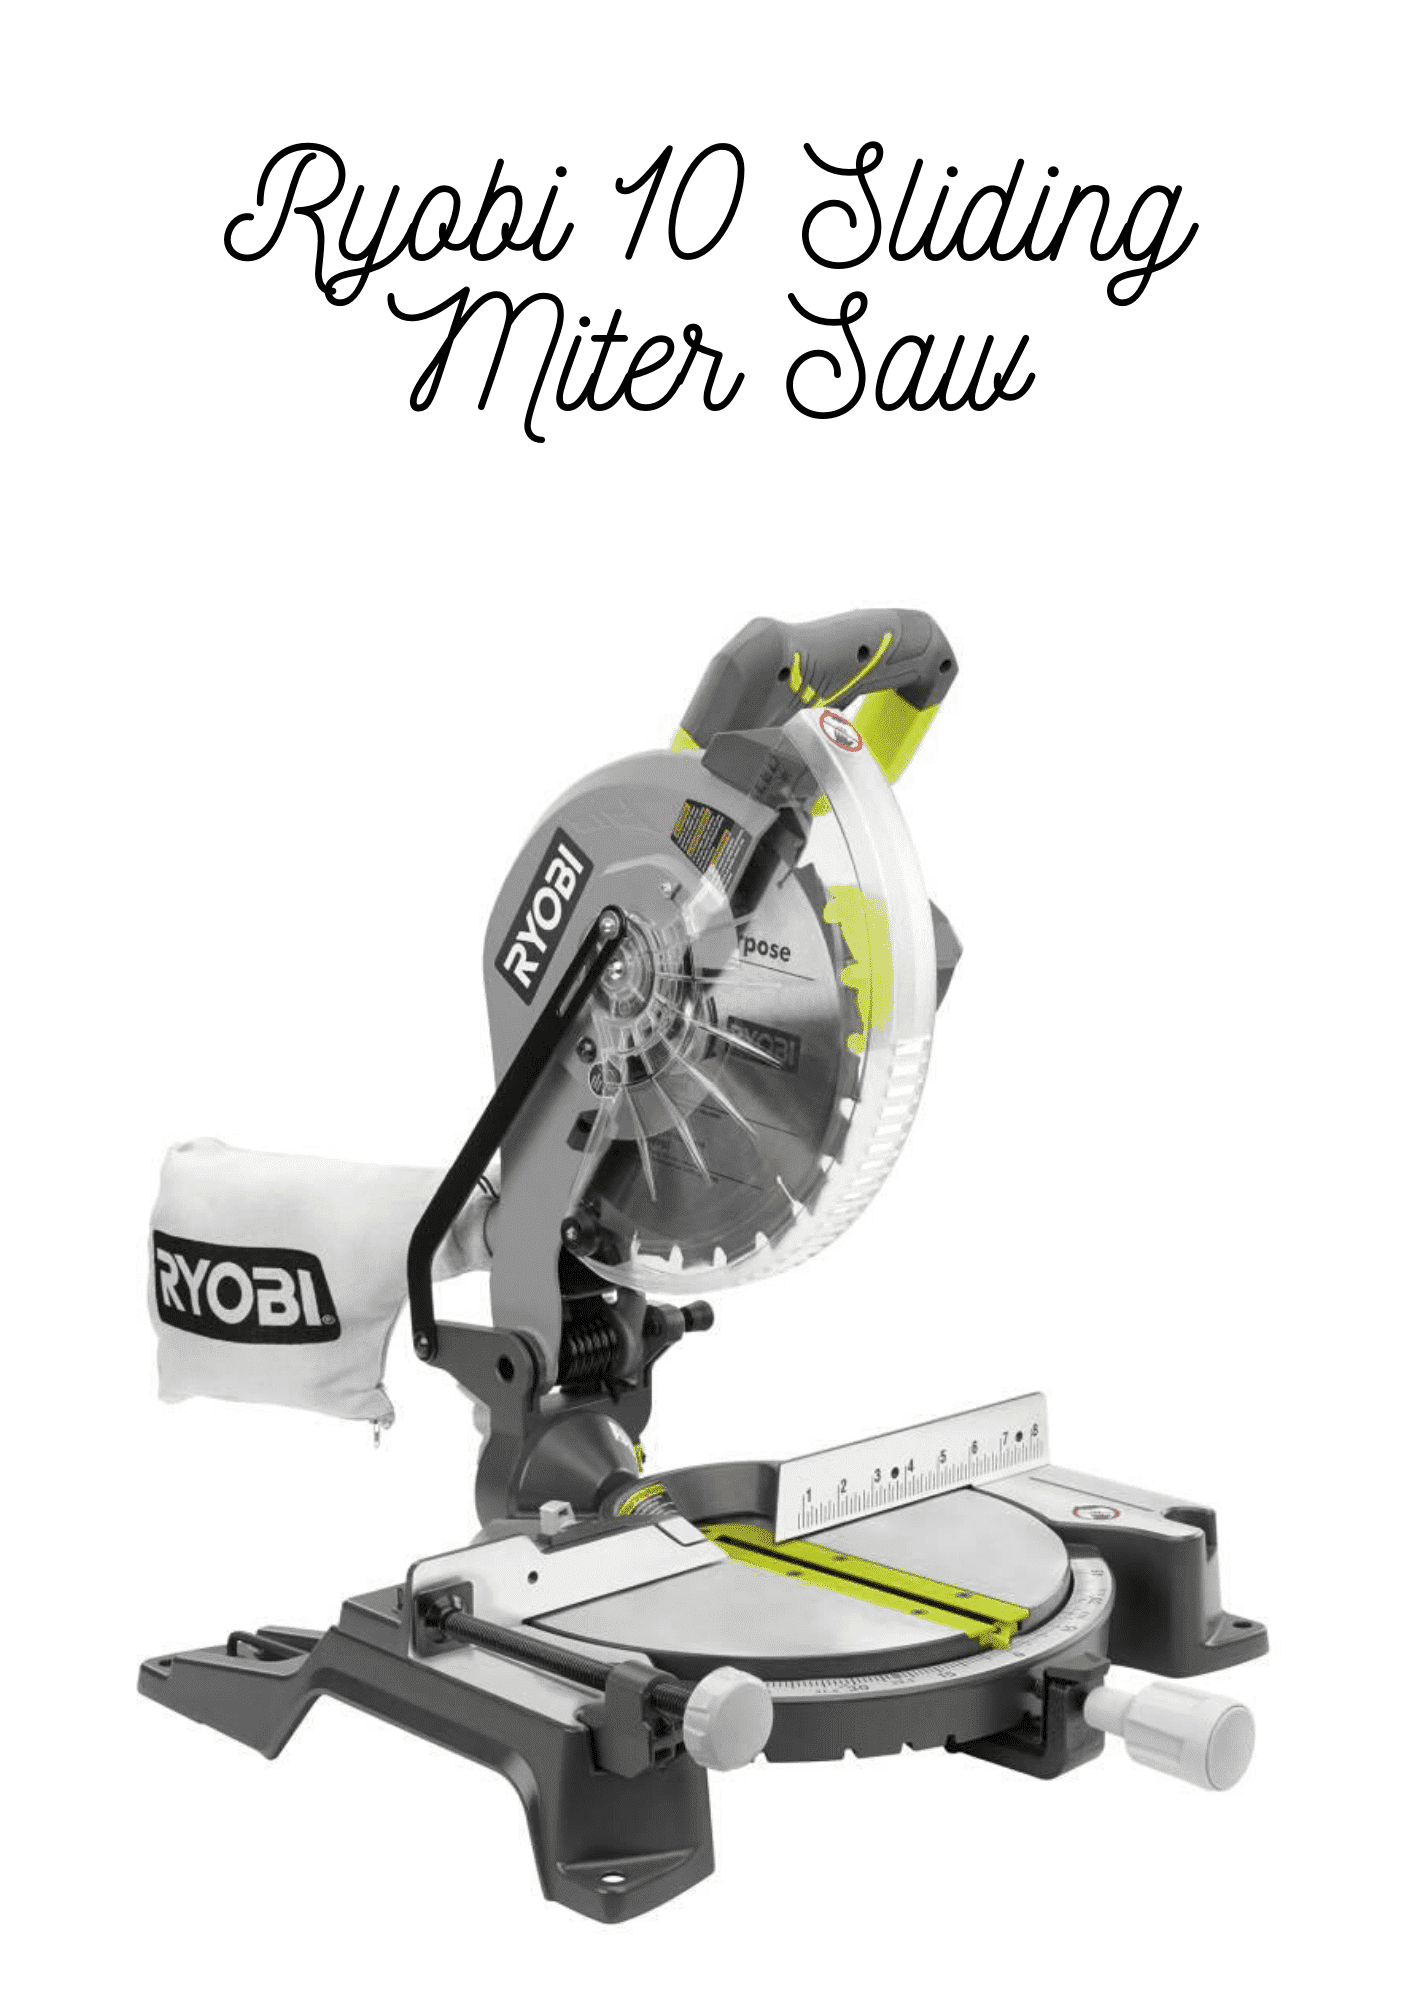 How To Have A Fantastic Ryobi Compound Miter Saw With Minimal Spending In 2020 Compound Mitre Saw Miter Saw Mitered